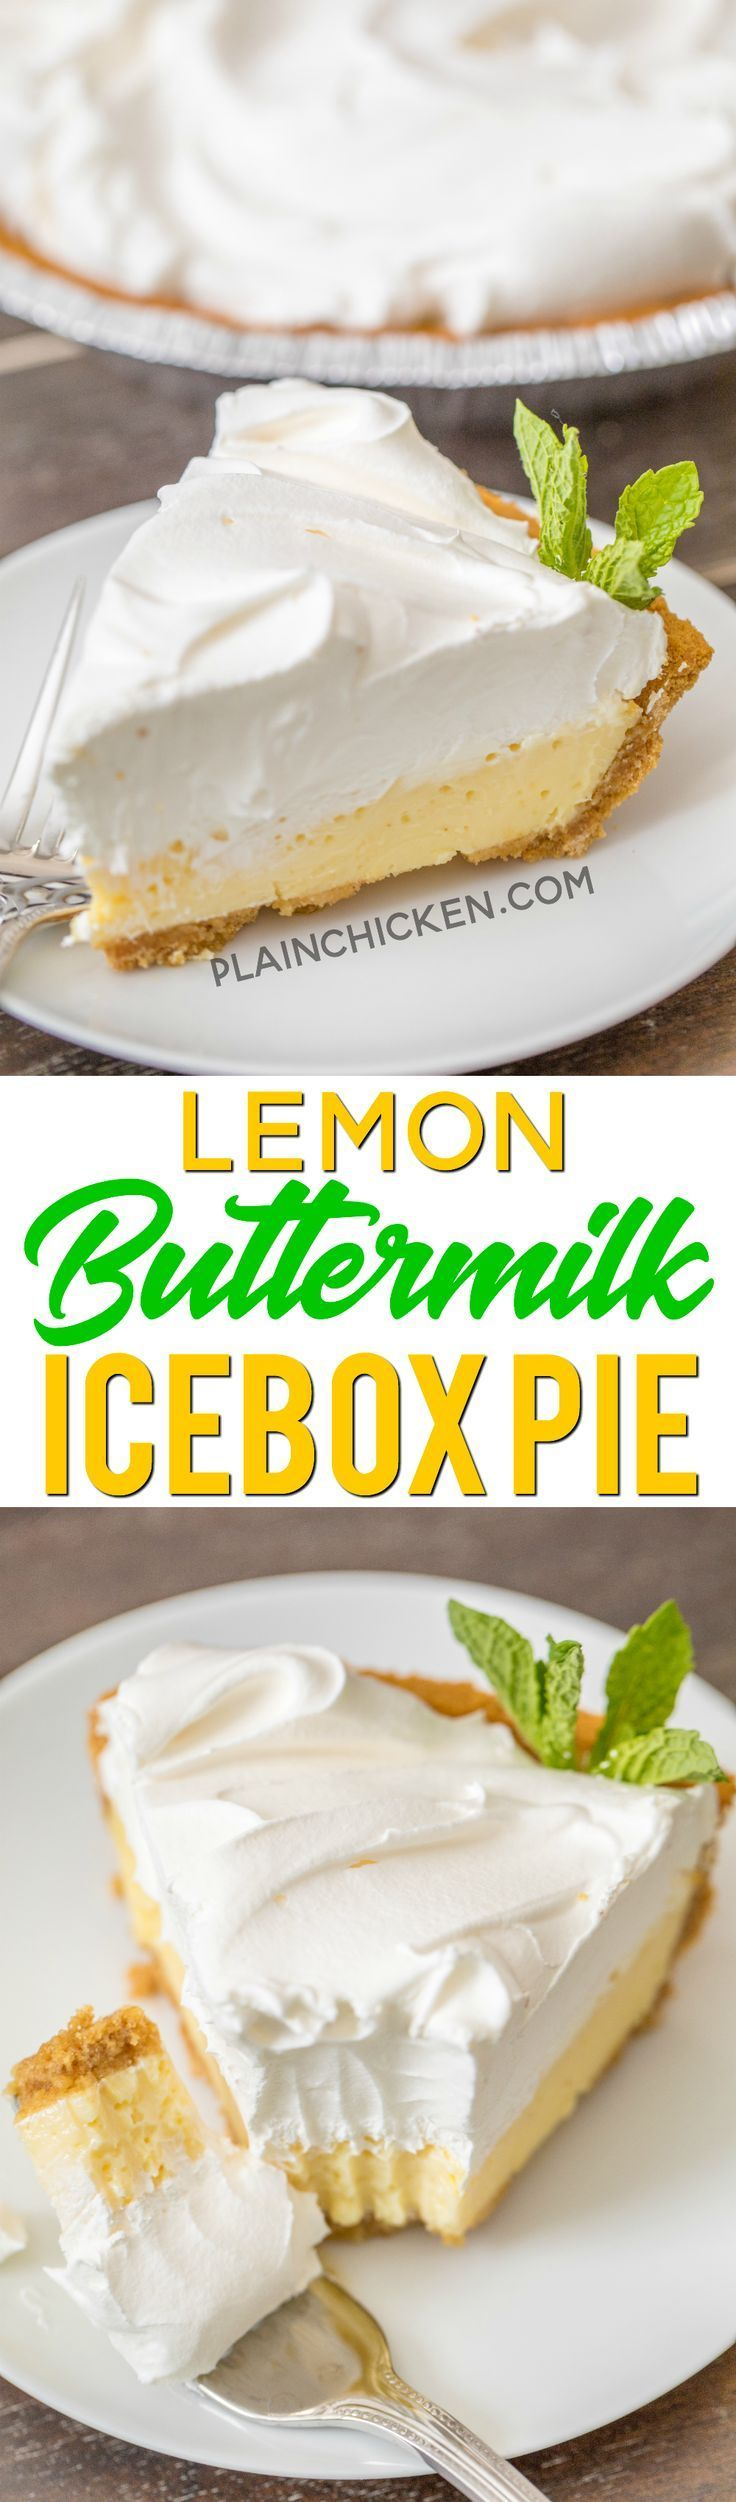 Lemon Buttermilk Icebox Pie To Die For Delicious So Simple And It Tastes Amazing We Made Two Of These Pies In One Lemon Recipes Icebox Pie Lemon Desserts